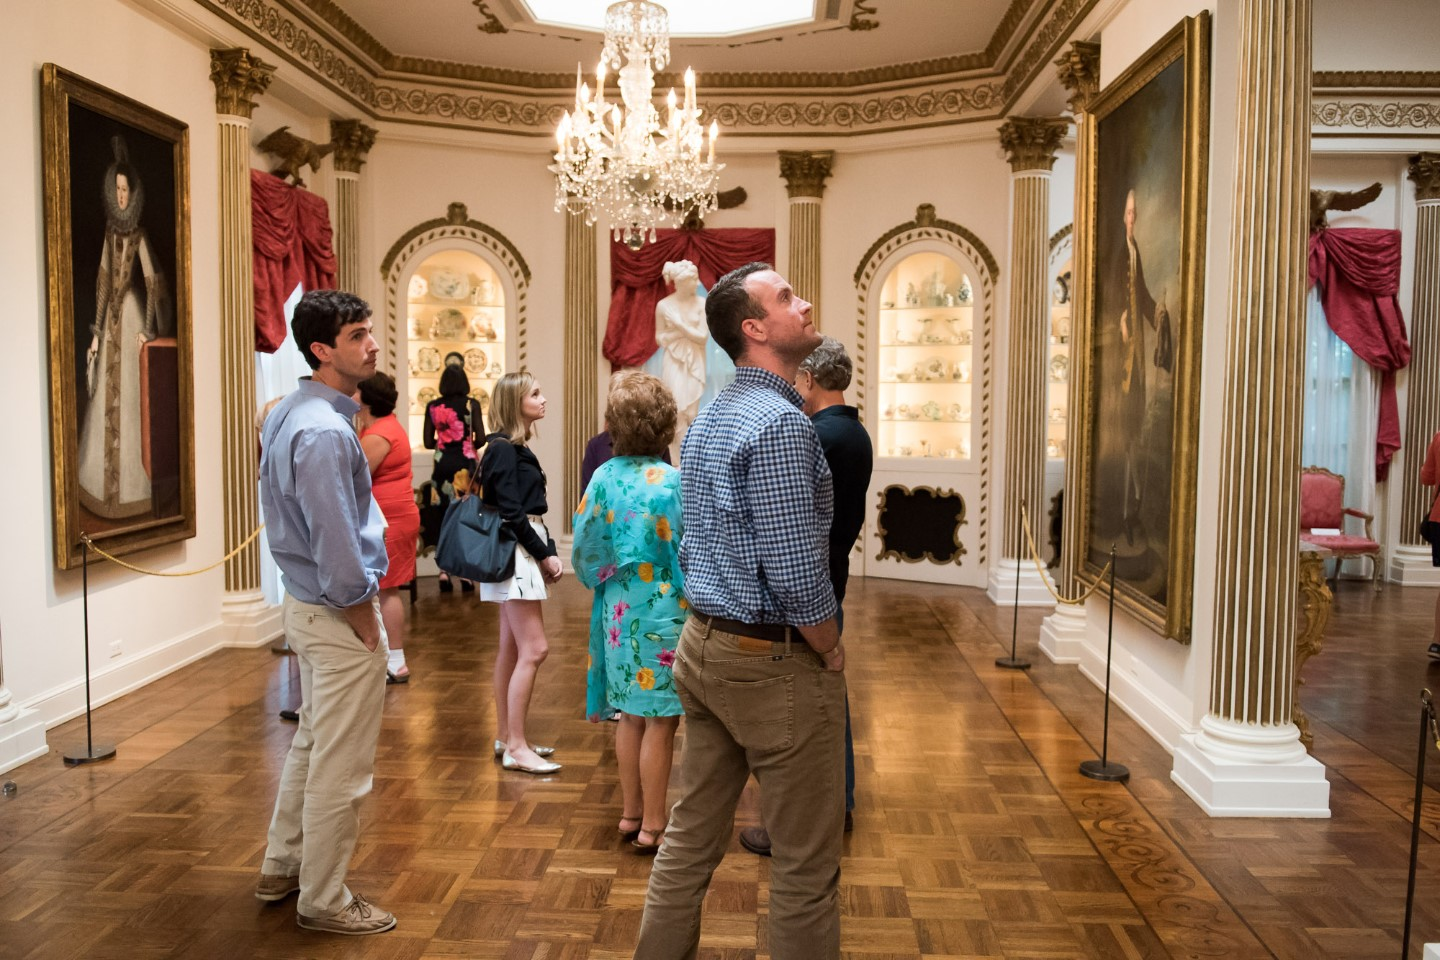 Rienzi Twilight Tour / event / people in ballroom, galleries